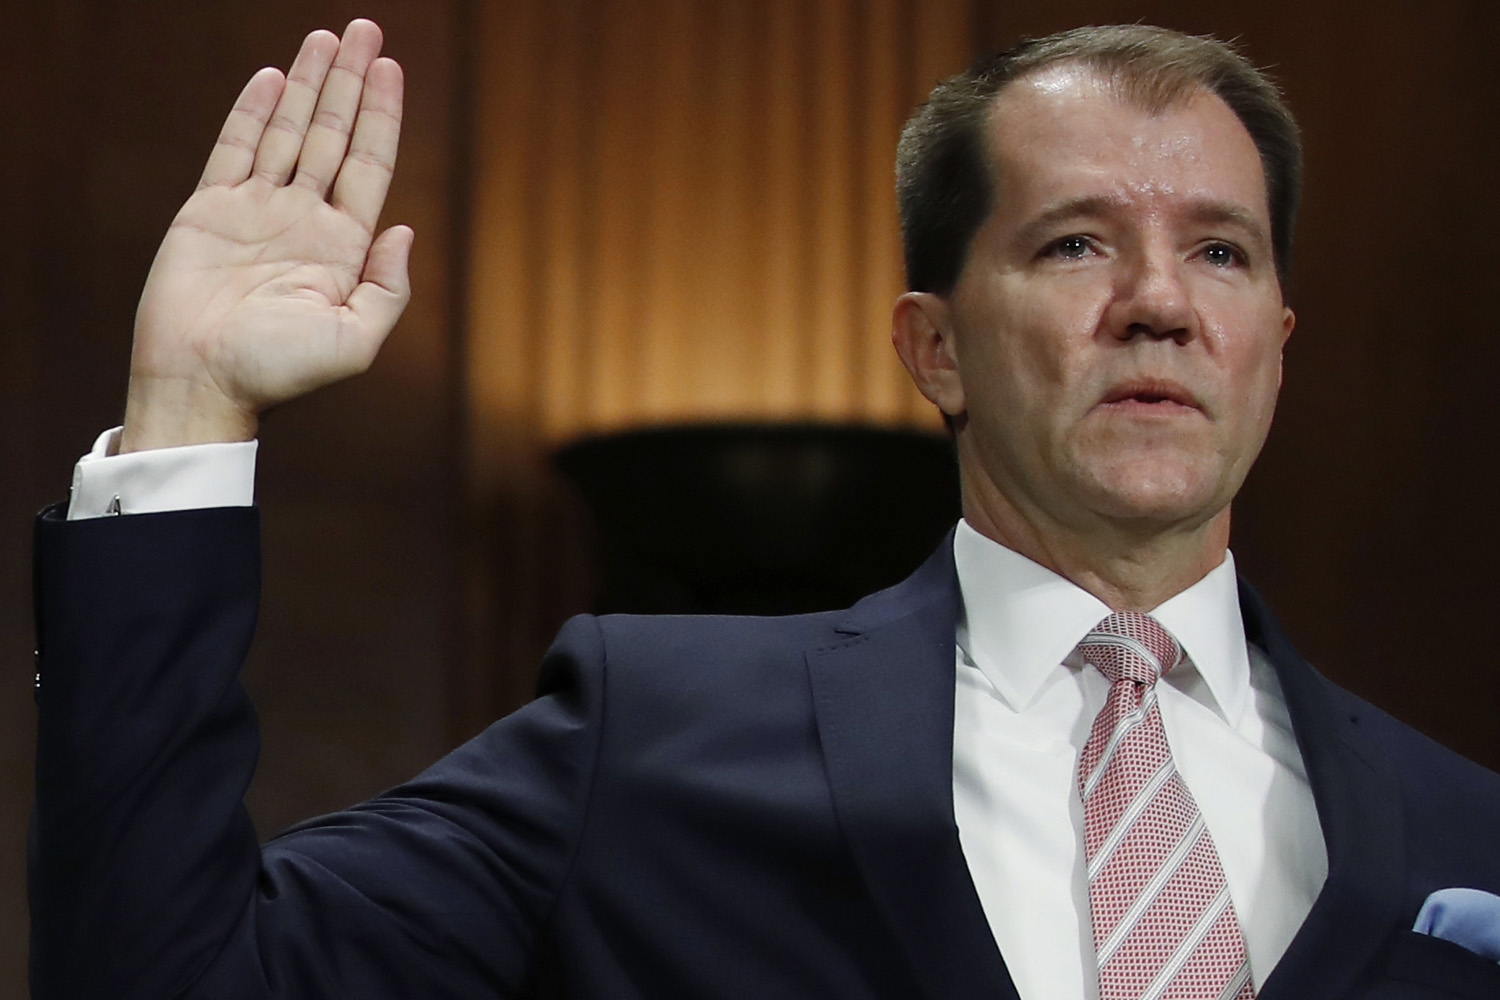 Donald Trump appointee Don Willett is sworn in during a Senate Judiciary Committee hearing on nominations on Capitol Hill in Washington, Wednesday, Nov. 15. (Carolyn Kaster/AP)